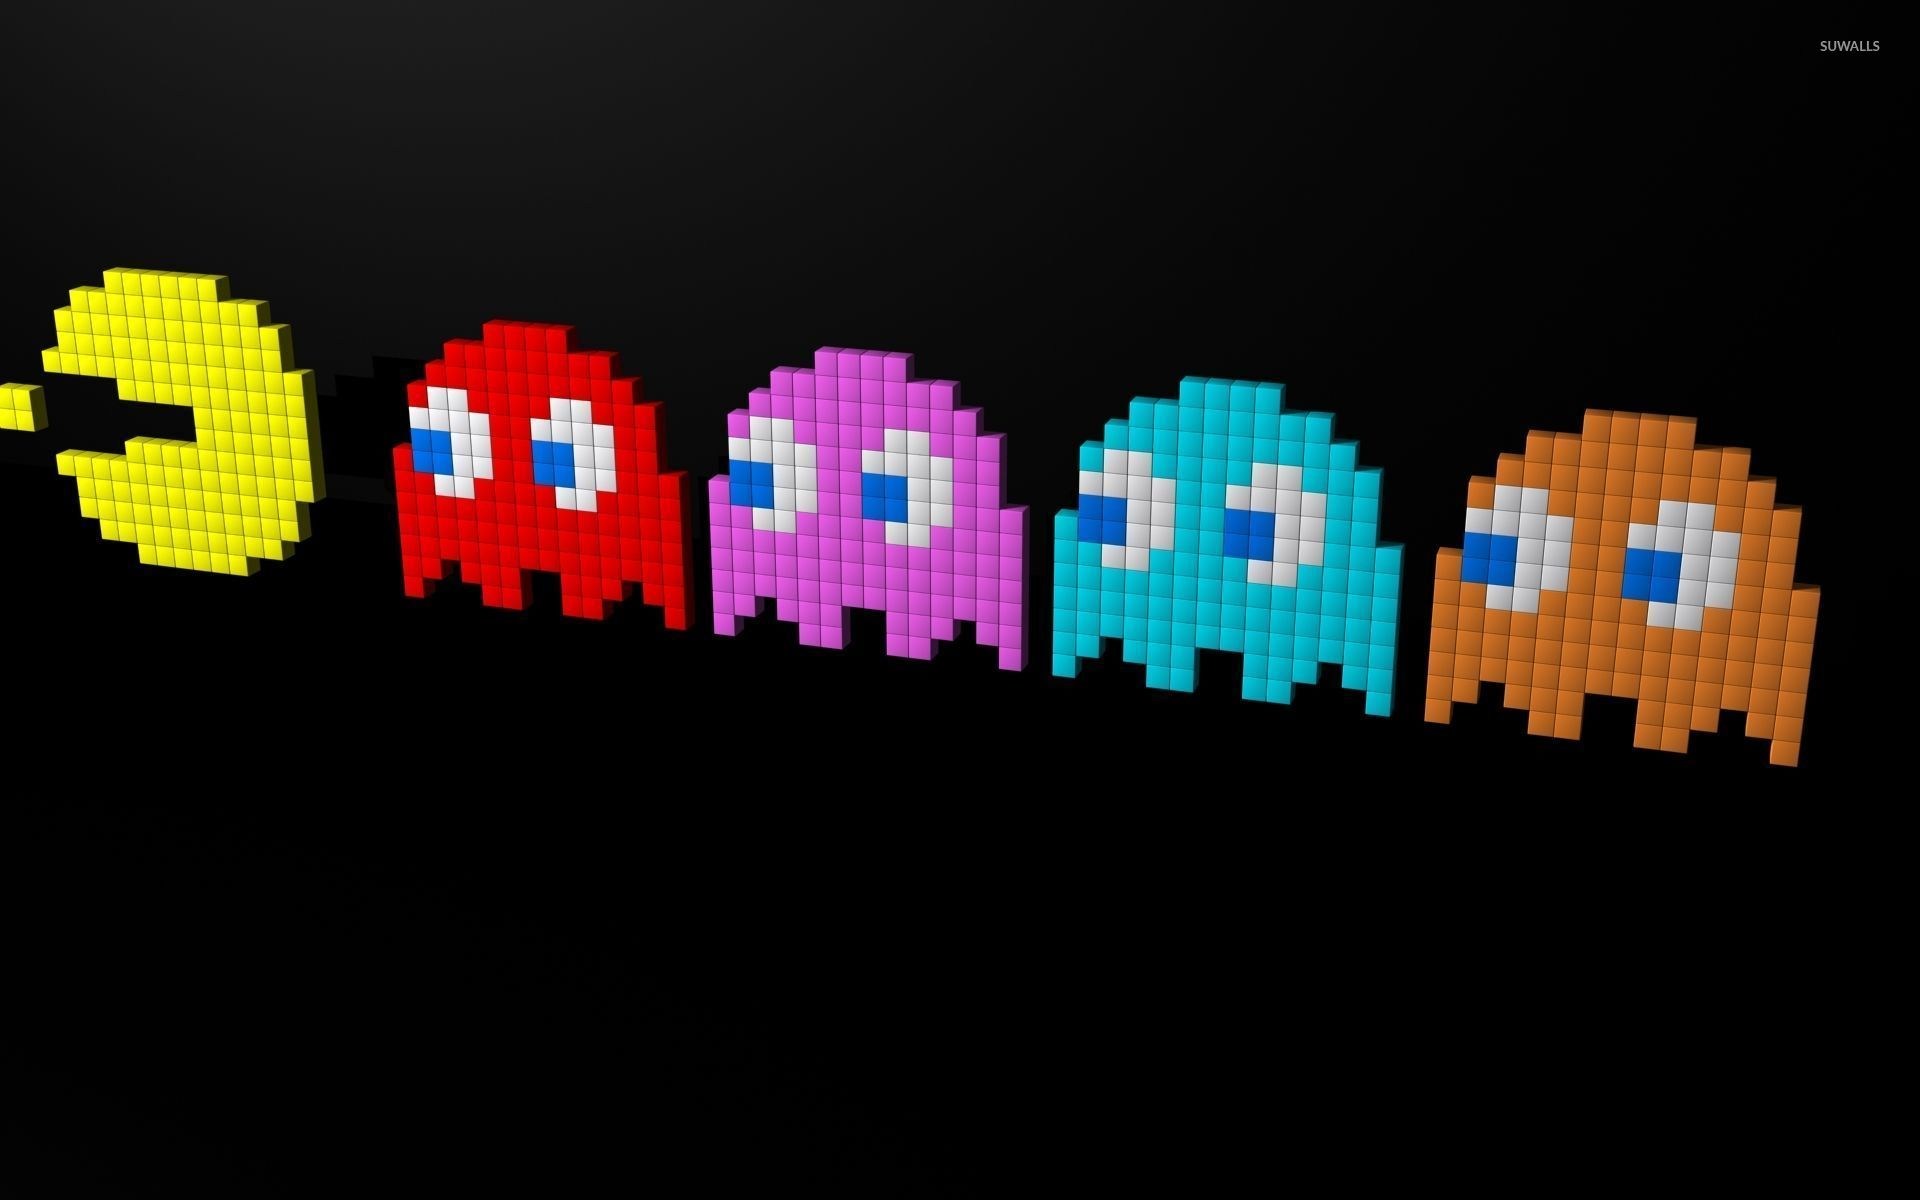 pacman wallpaper for walls